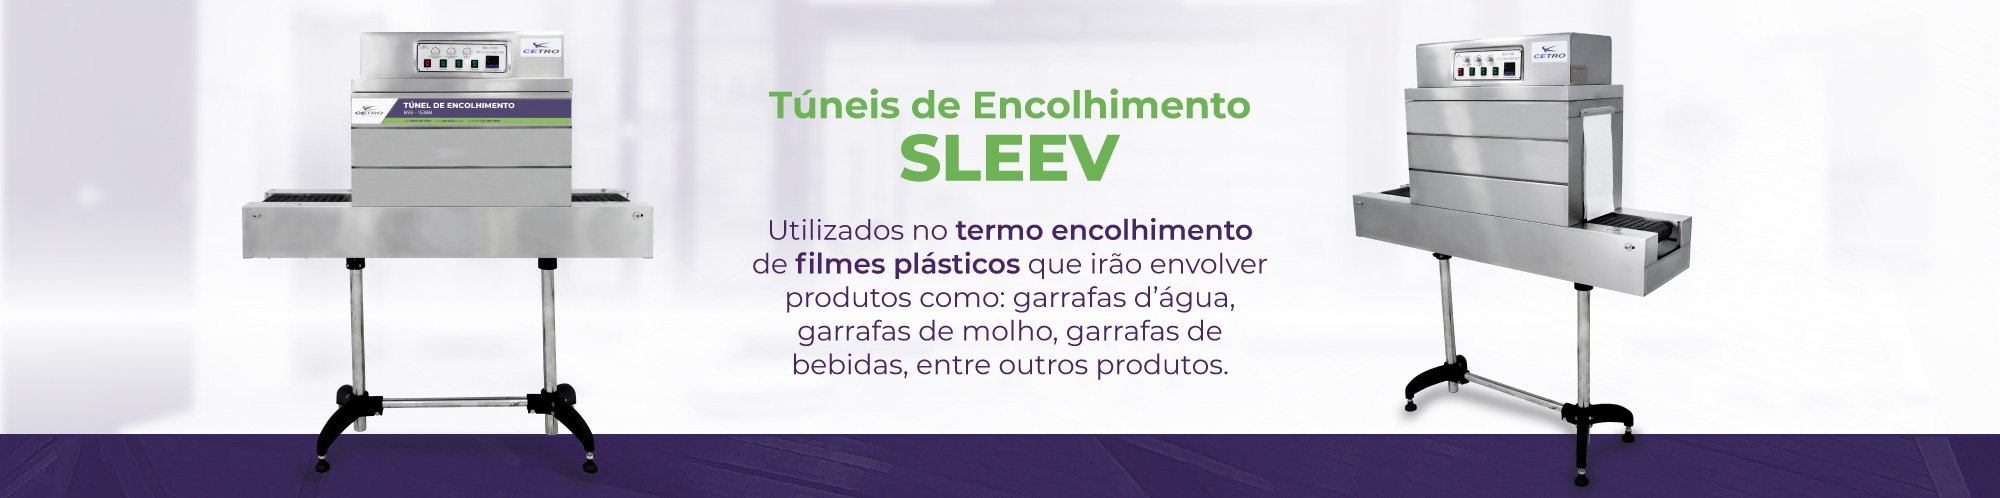 Categorias - Túnel de Encolhimento Sleev